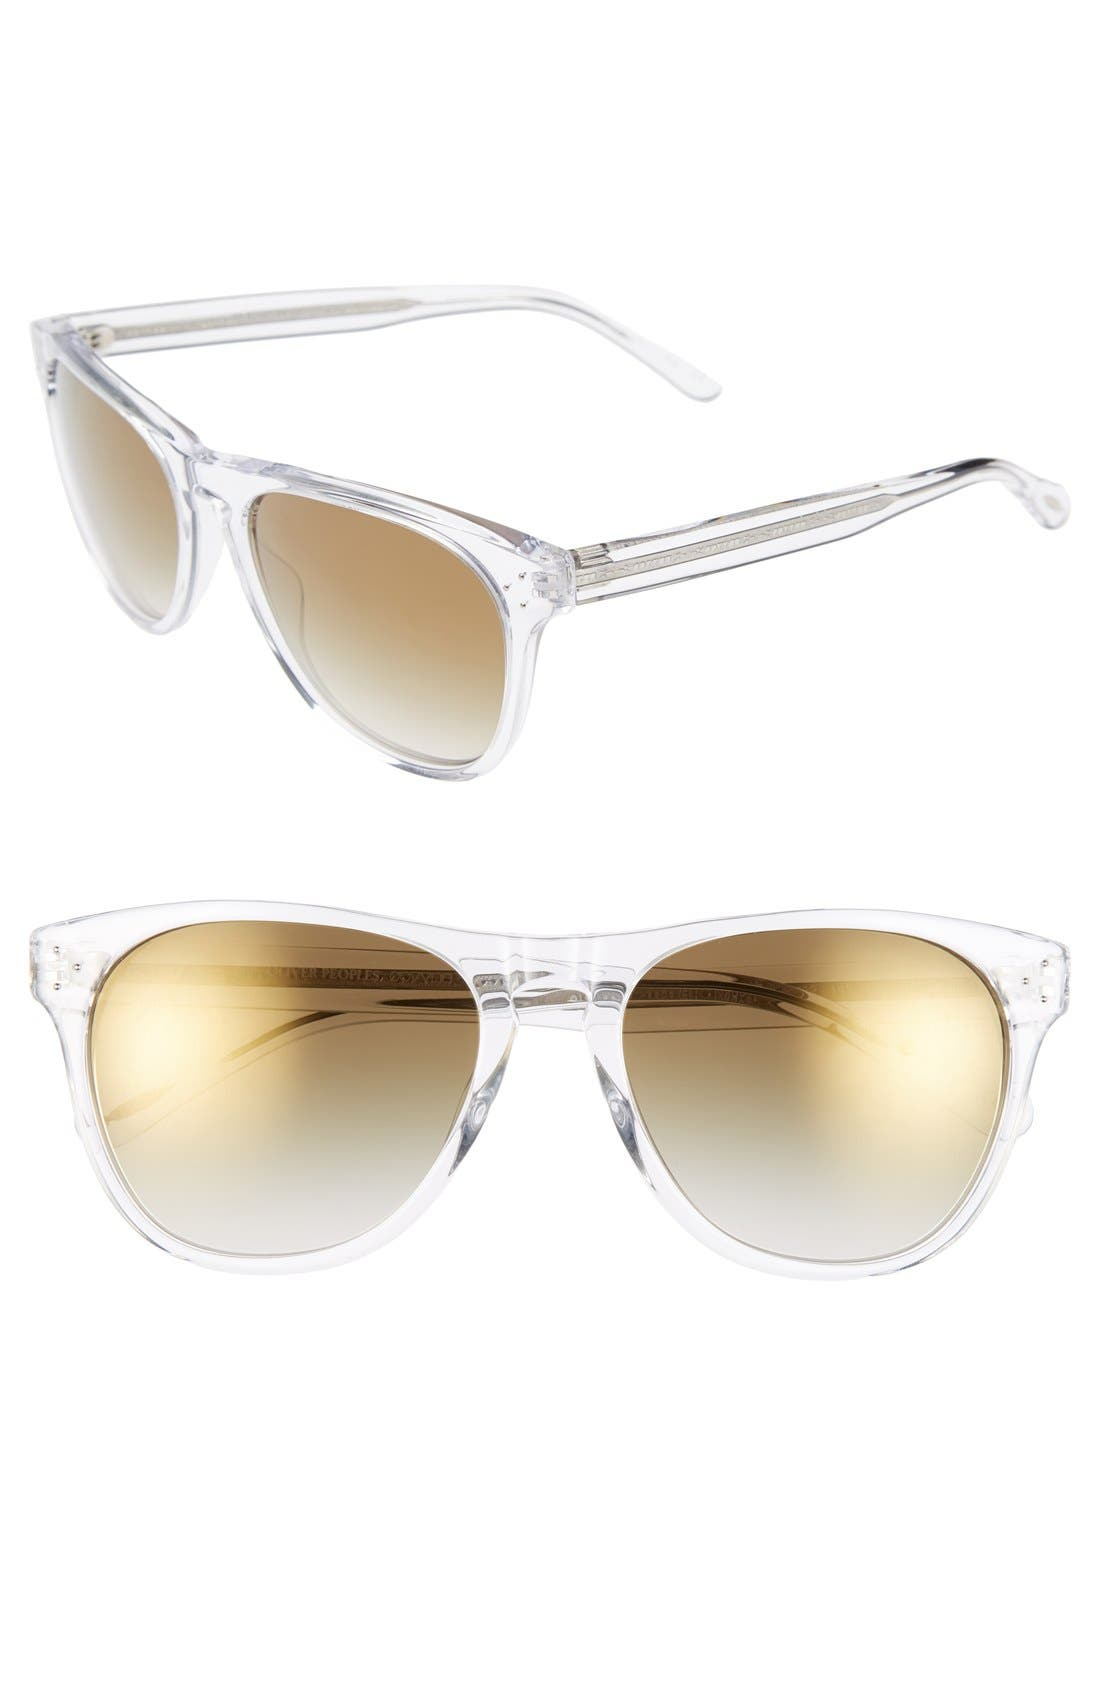 Alternate Image 1 Selected - Oliver Peoples 'Daddy B' 58mm Sunglasses